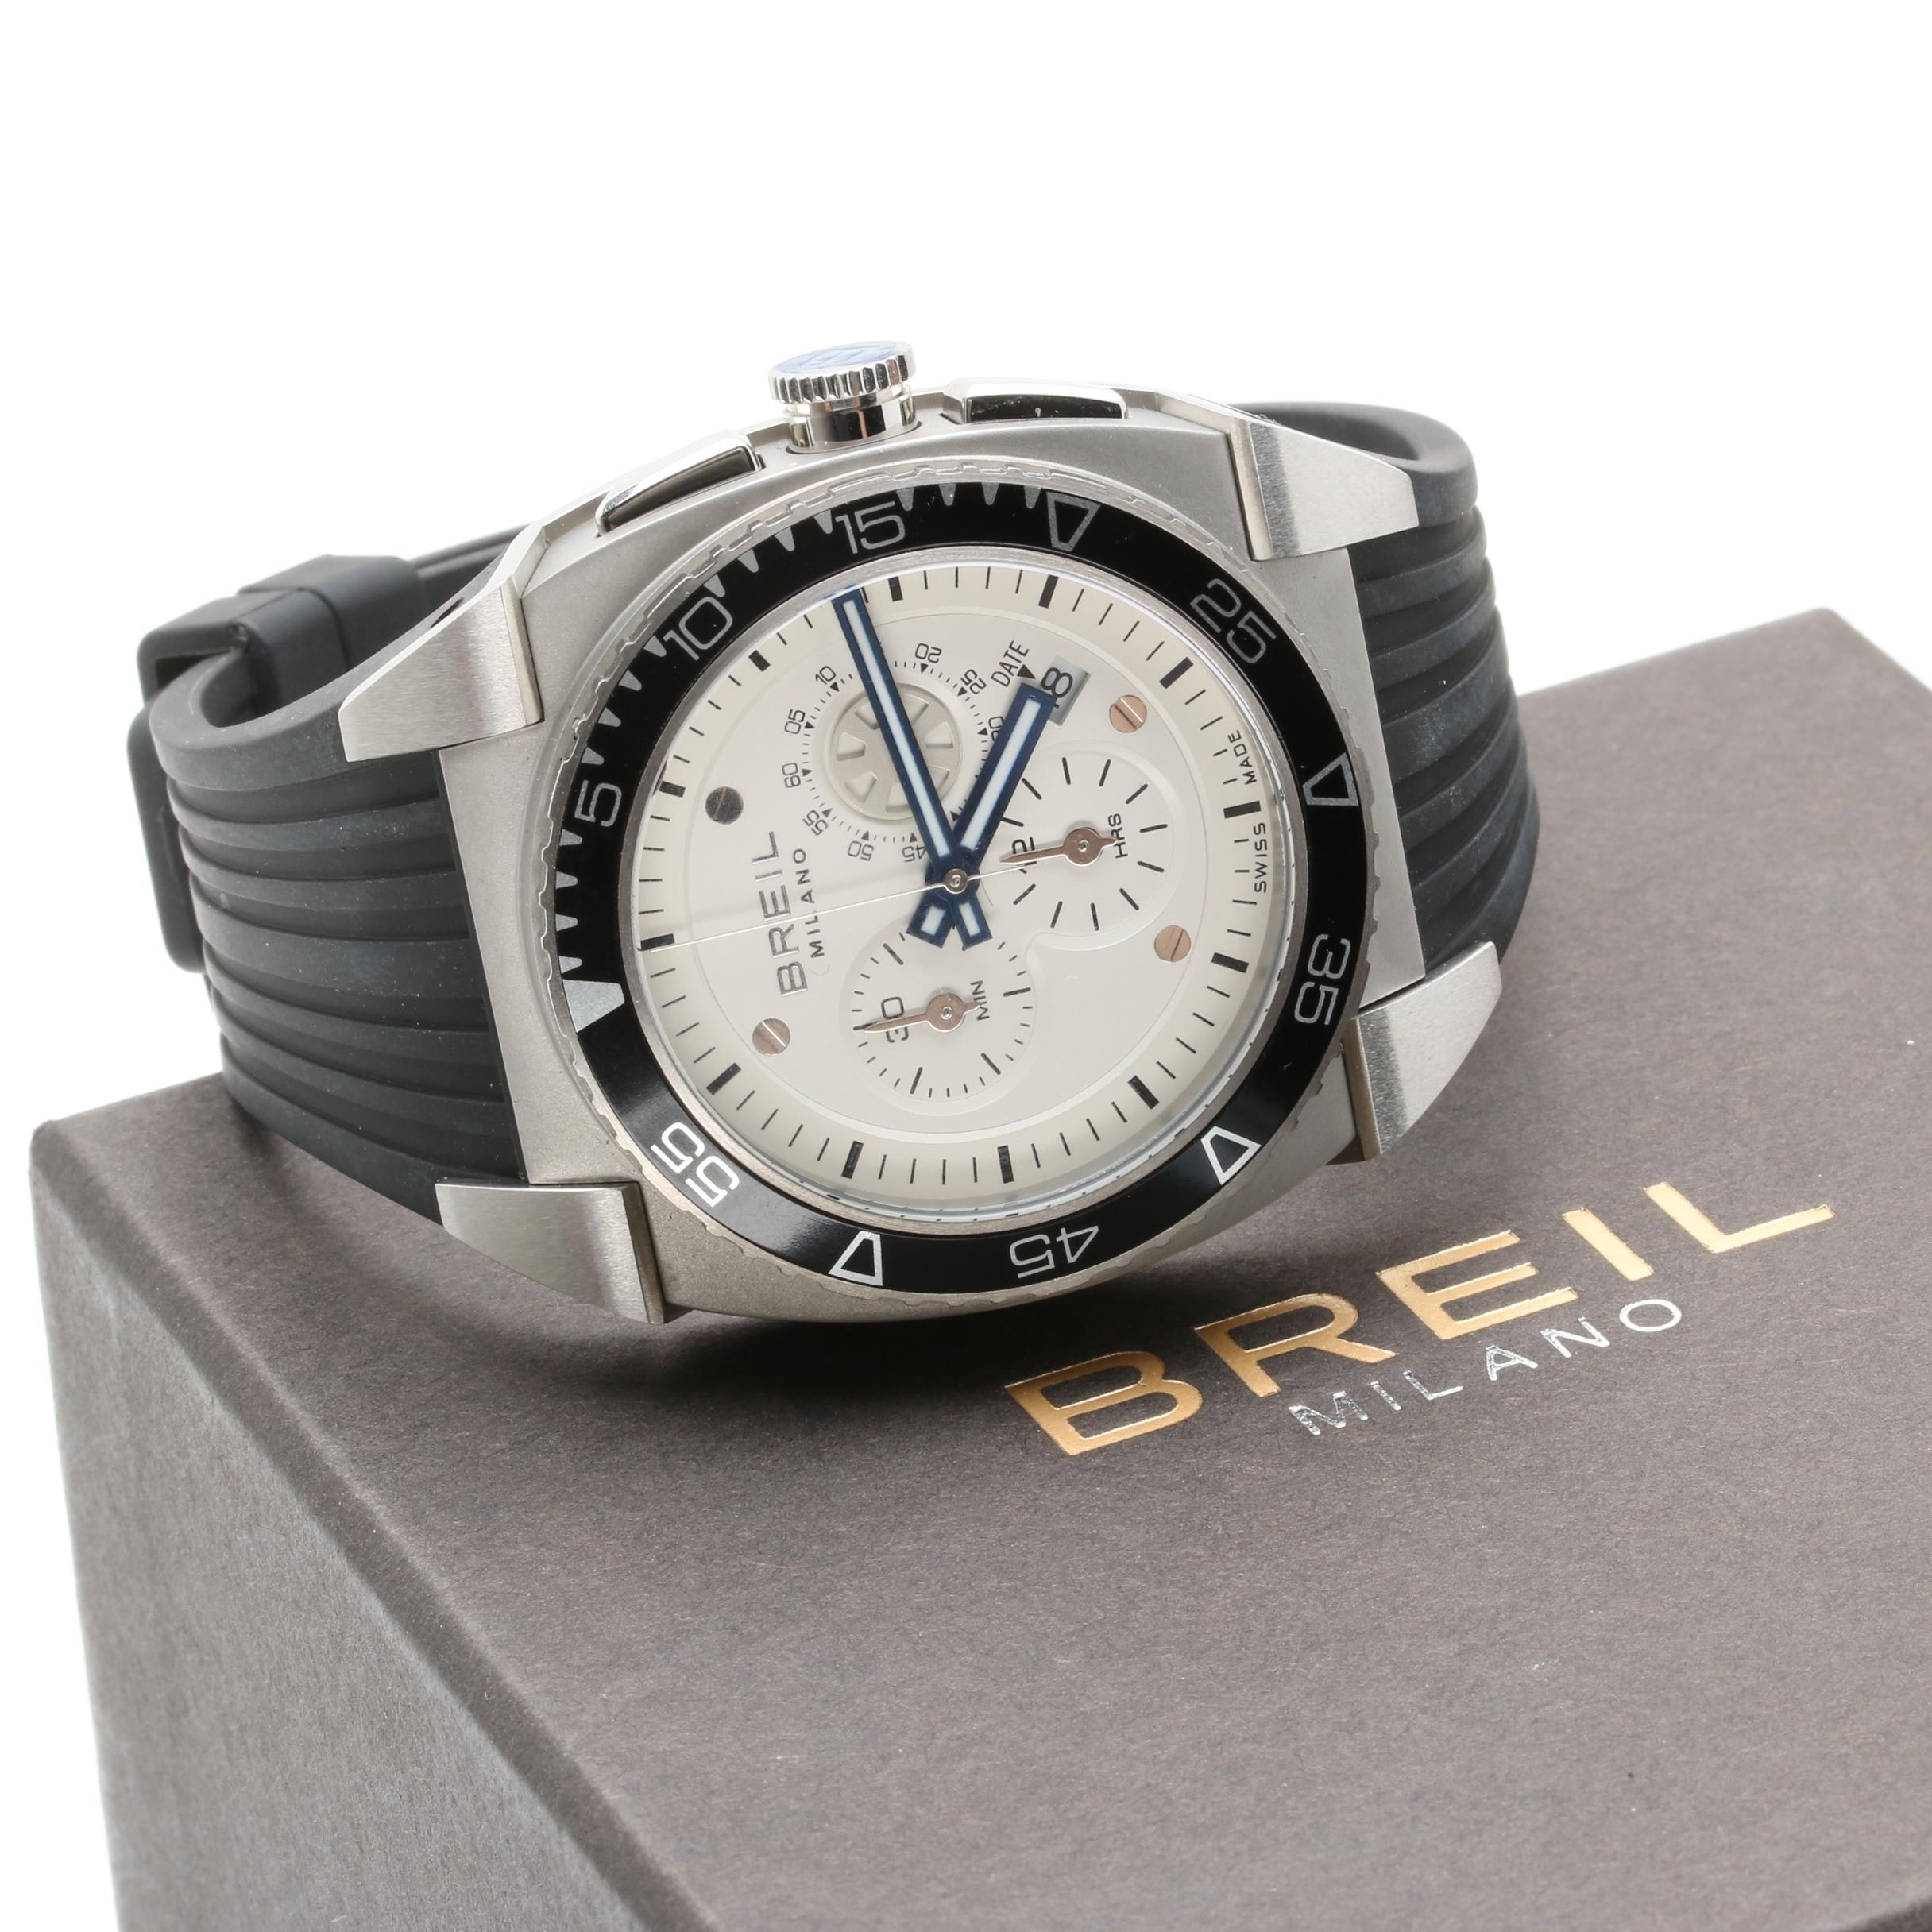 Breil Milano Stainless Steel Swiss Chronograph Wristwatch